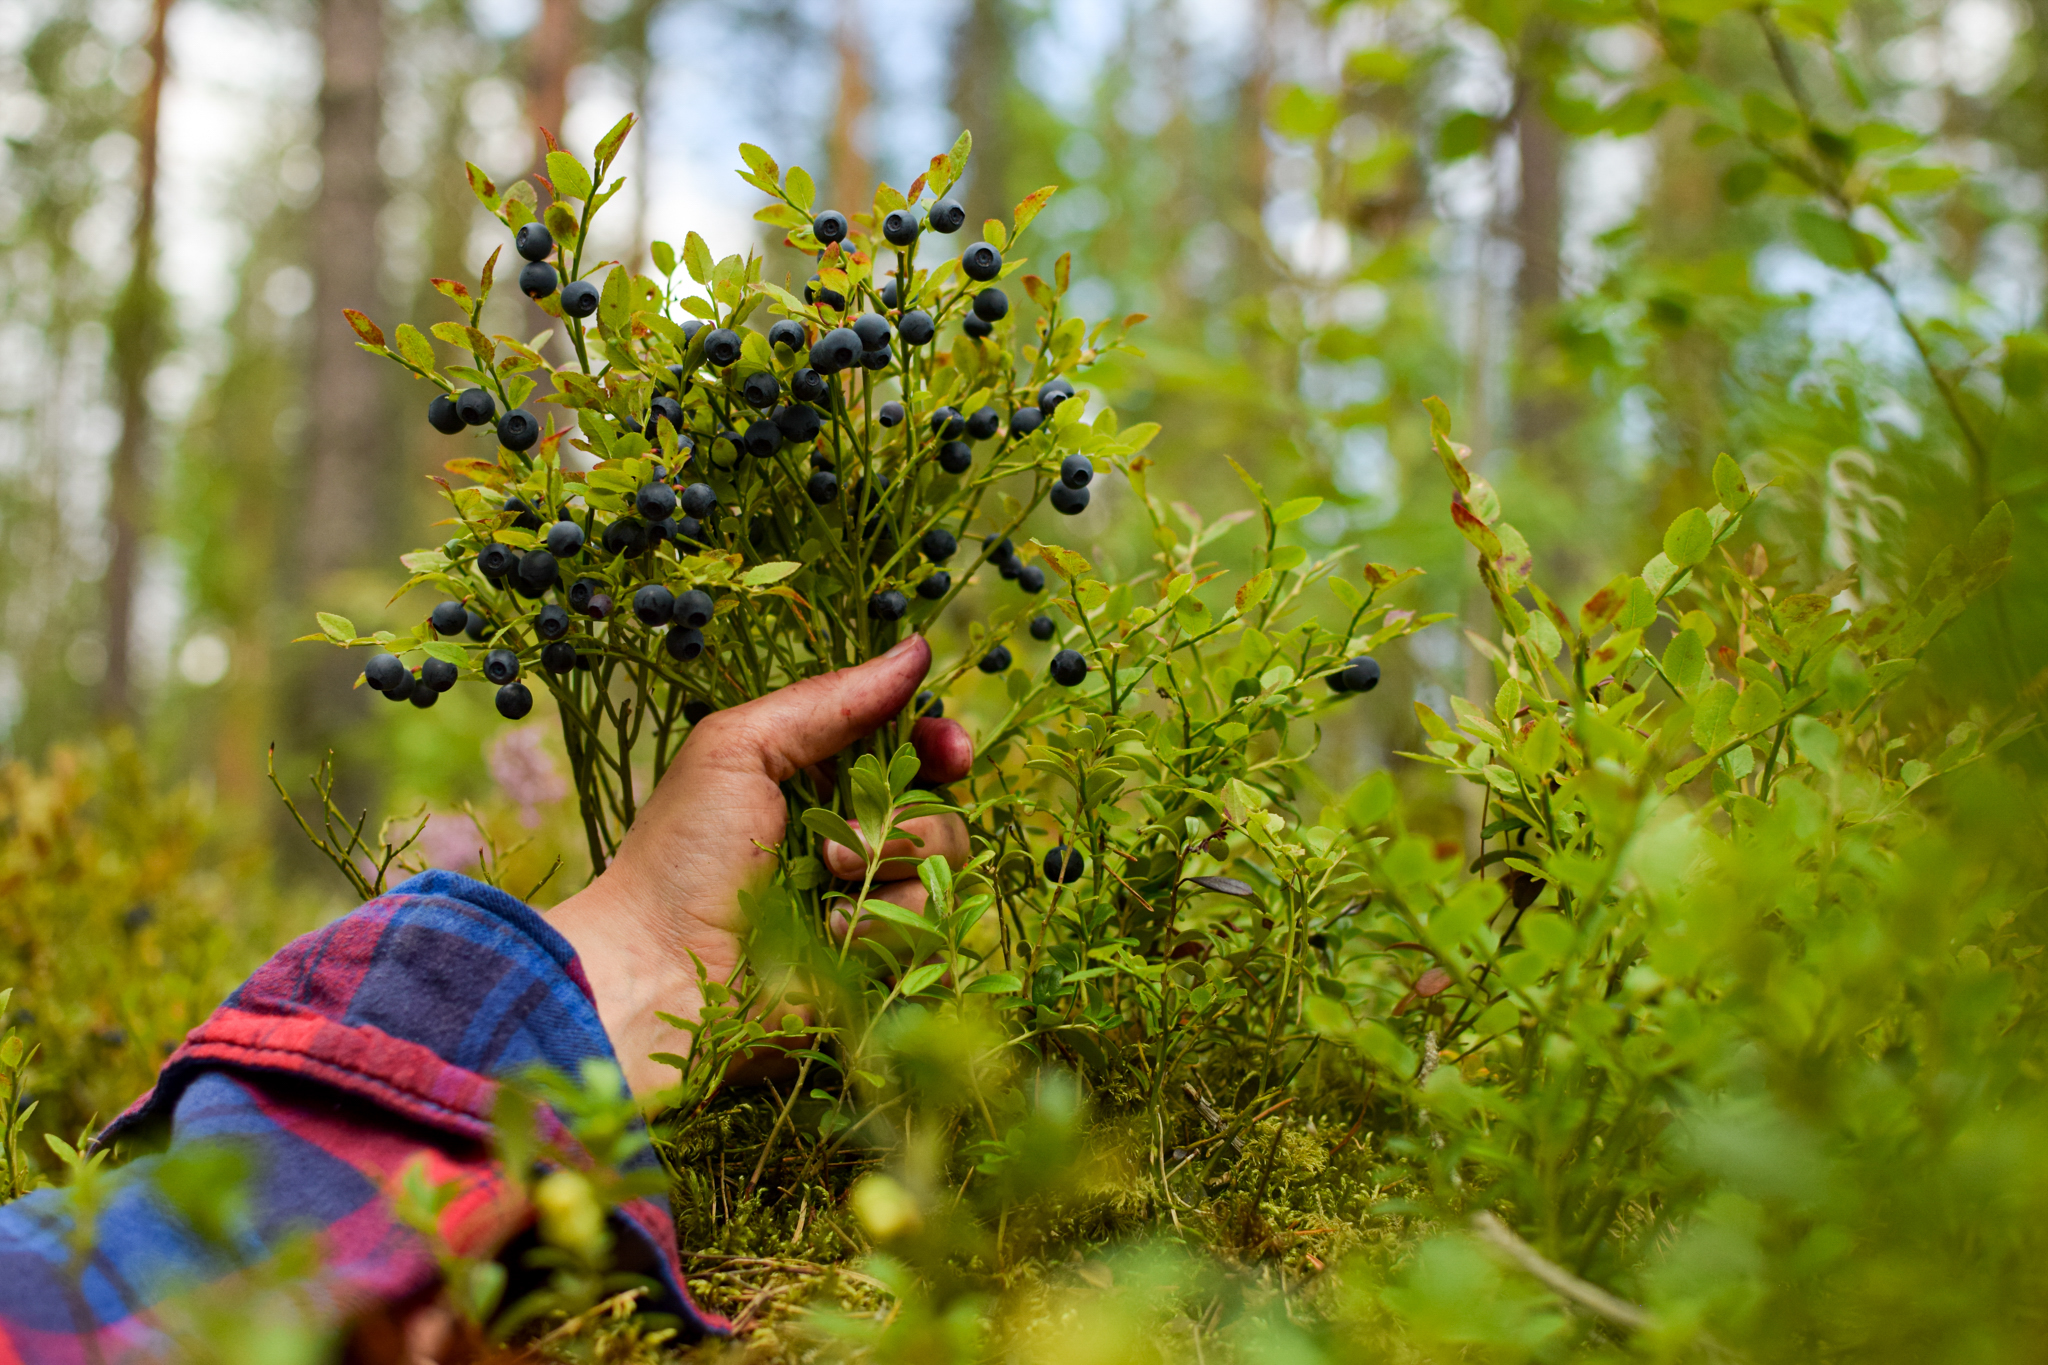 Finnish summer ways to connect with nature and yourself by picking wild blueberries and making a pie